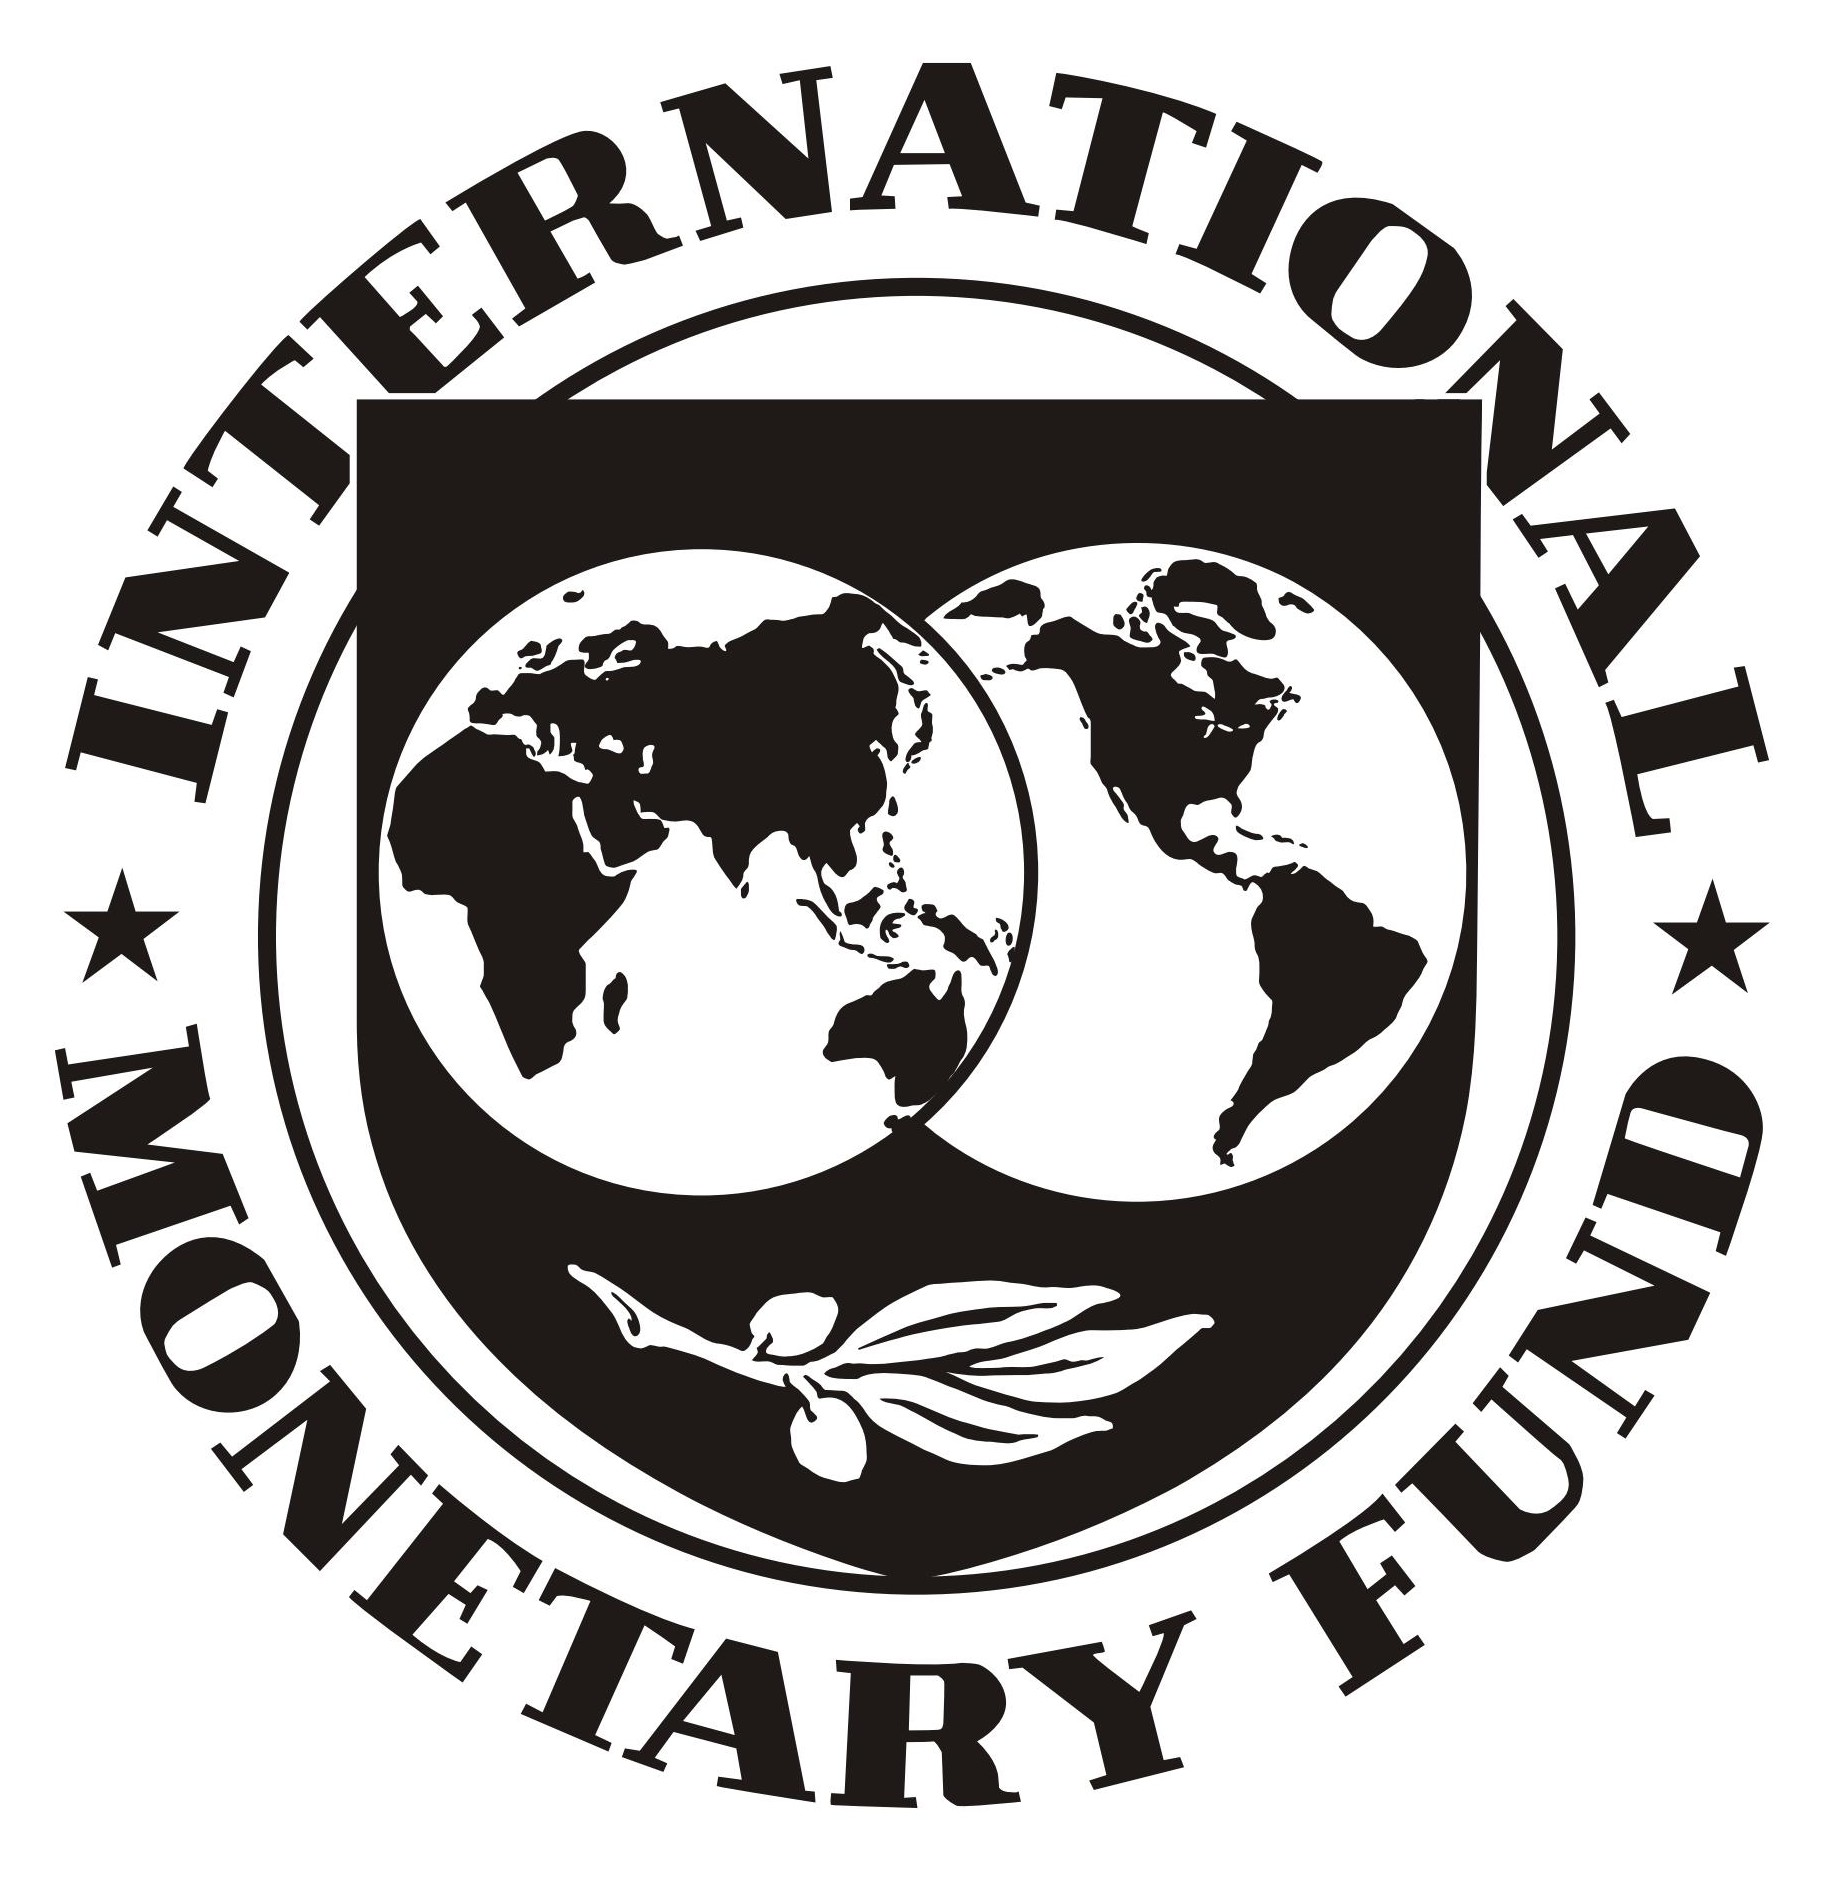 imf-international-monetary-fund-logo.jpg